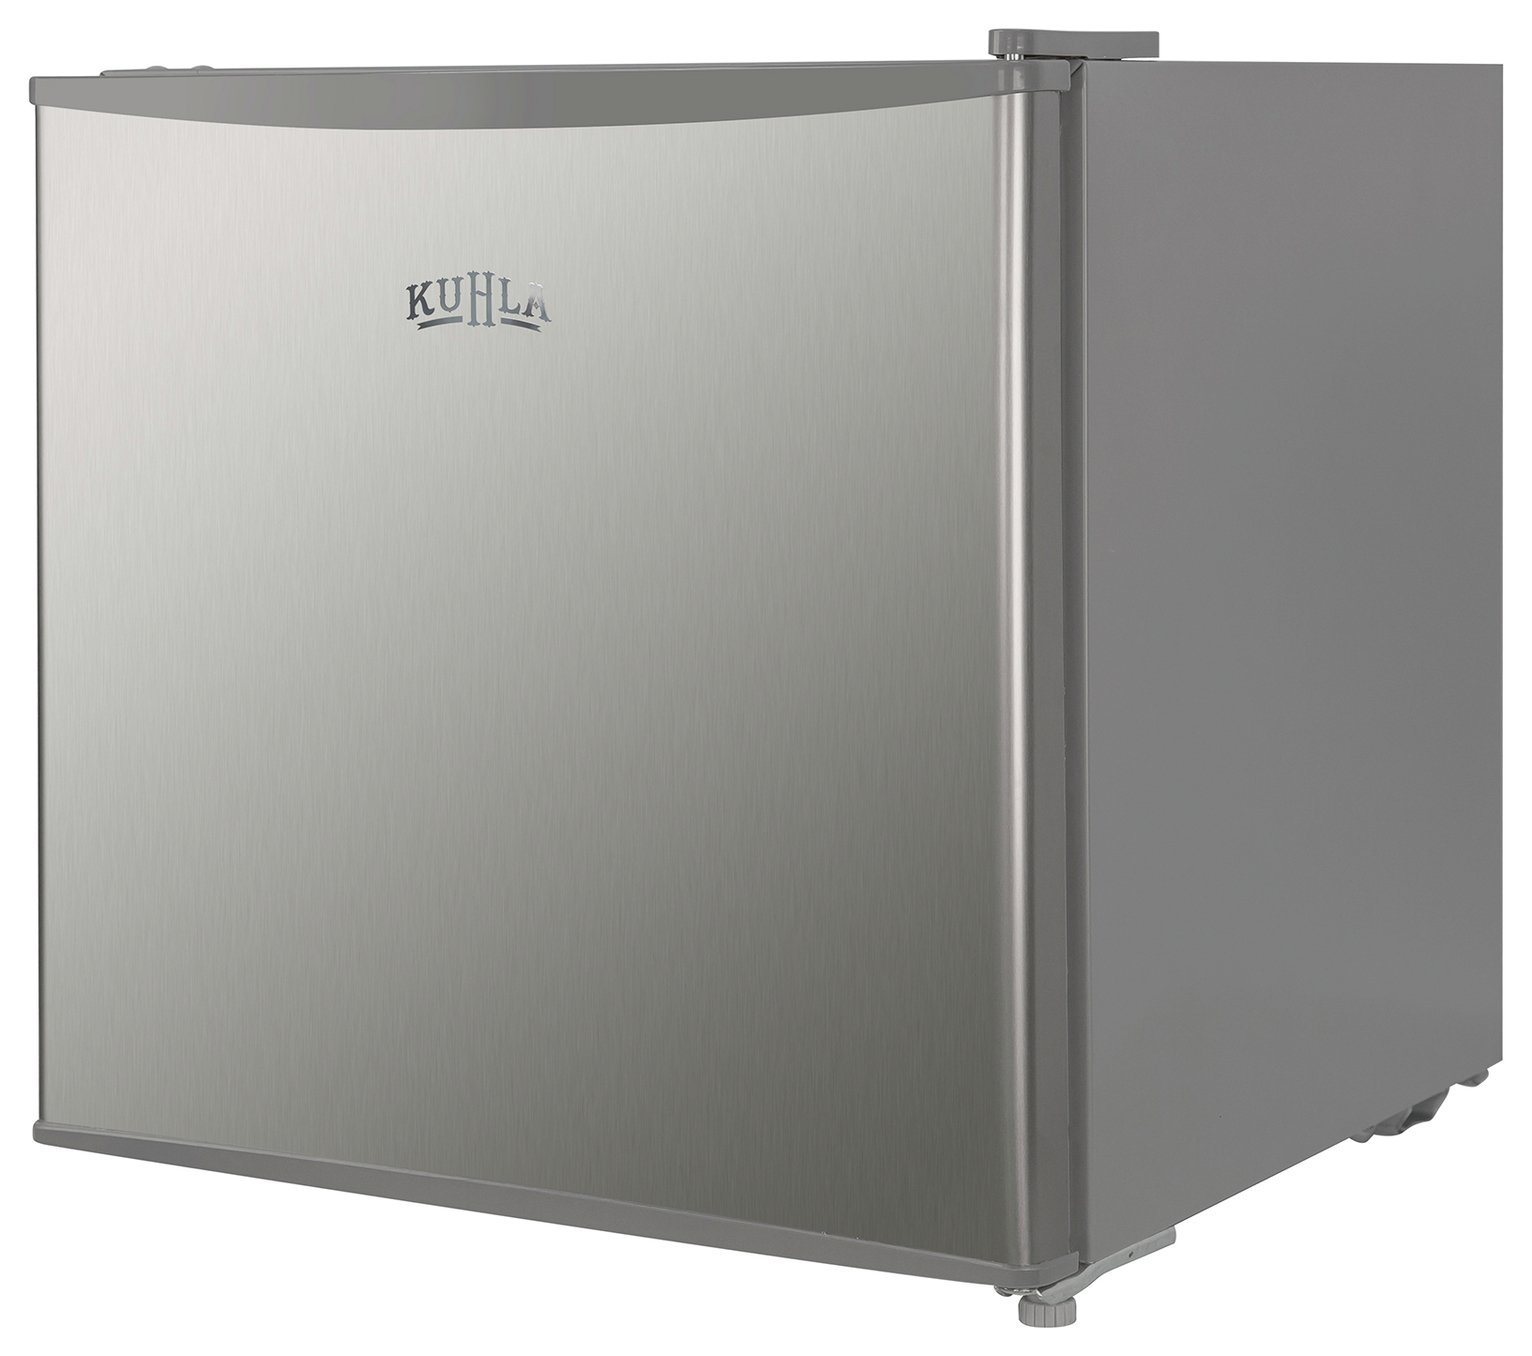 Kuhla KTT4SSGB Mini Fridge - Stainless Steel Effect